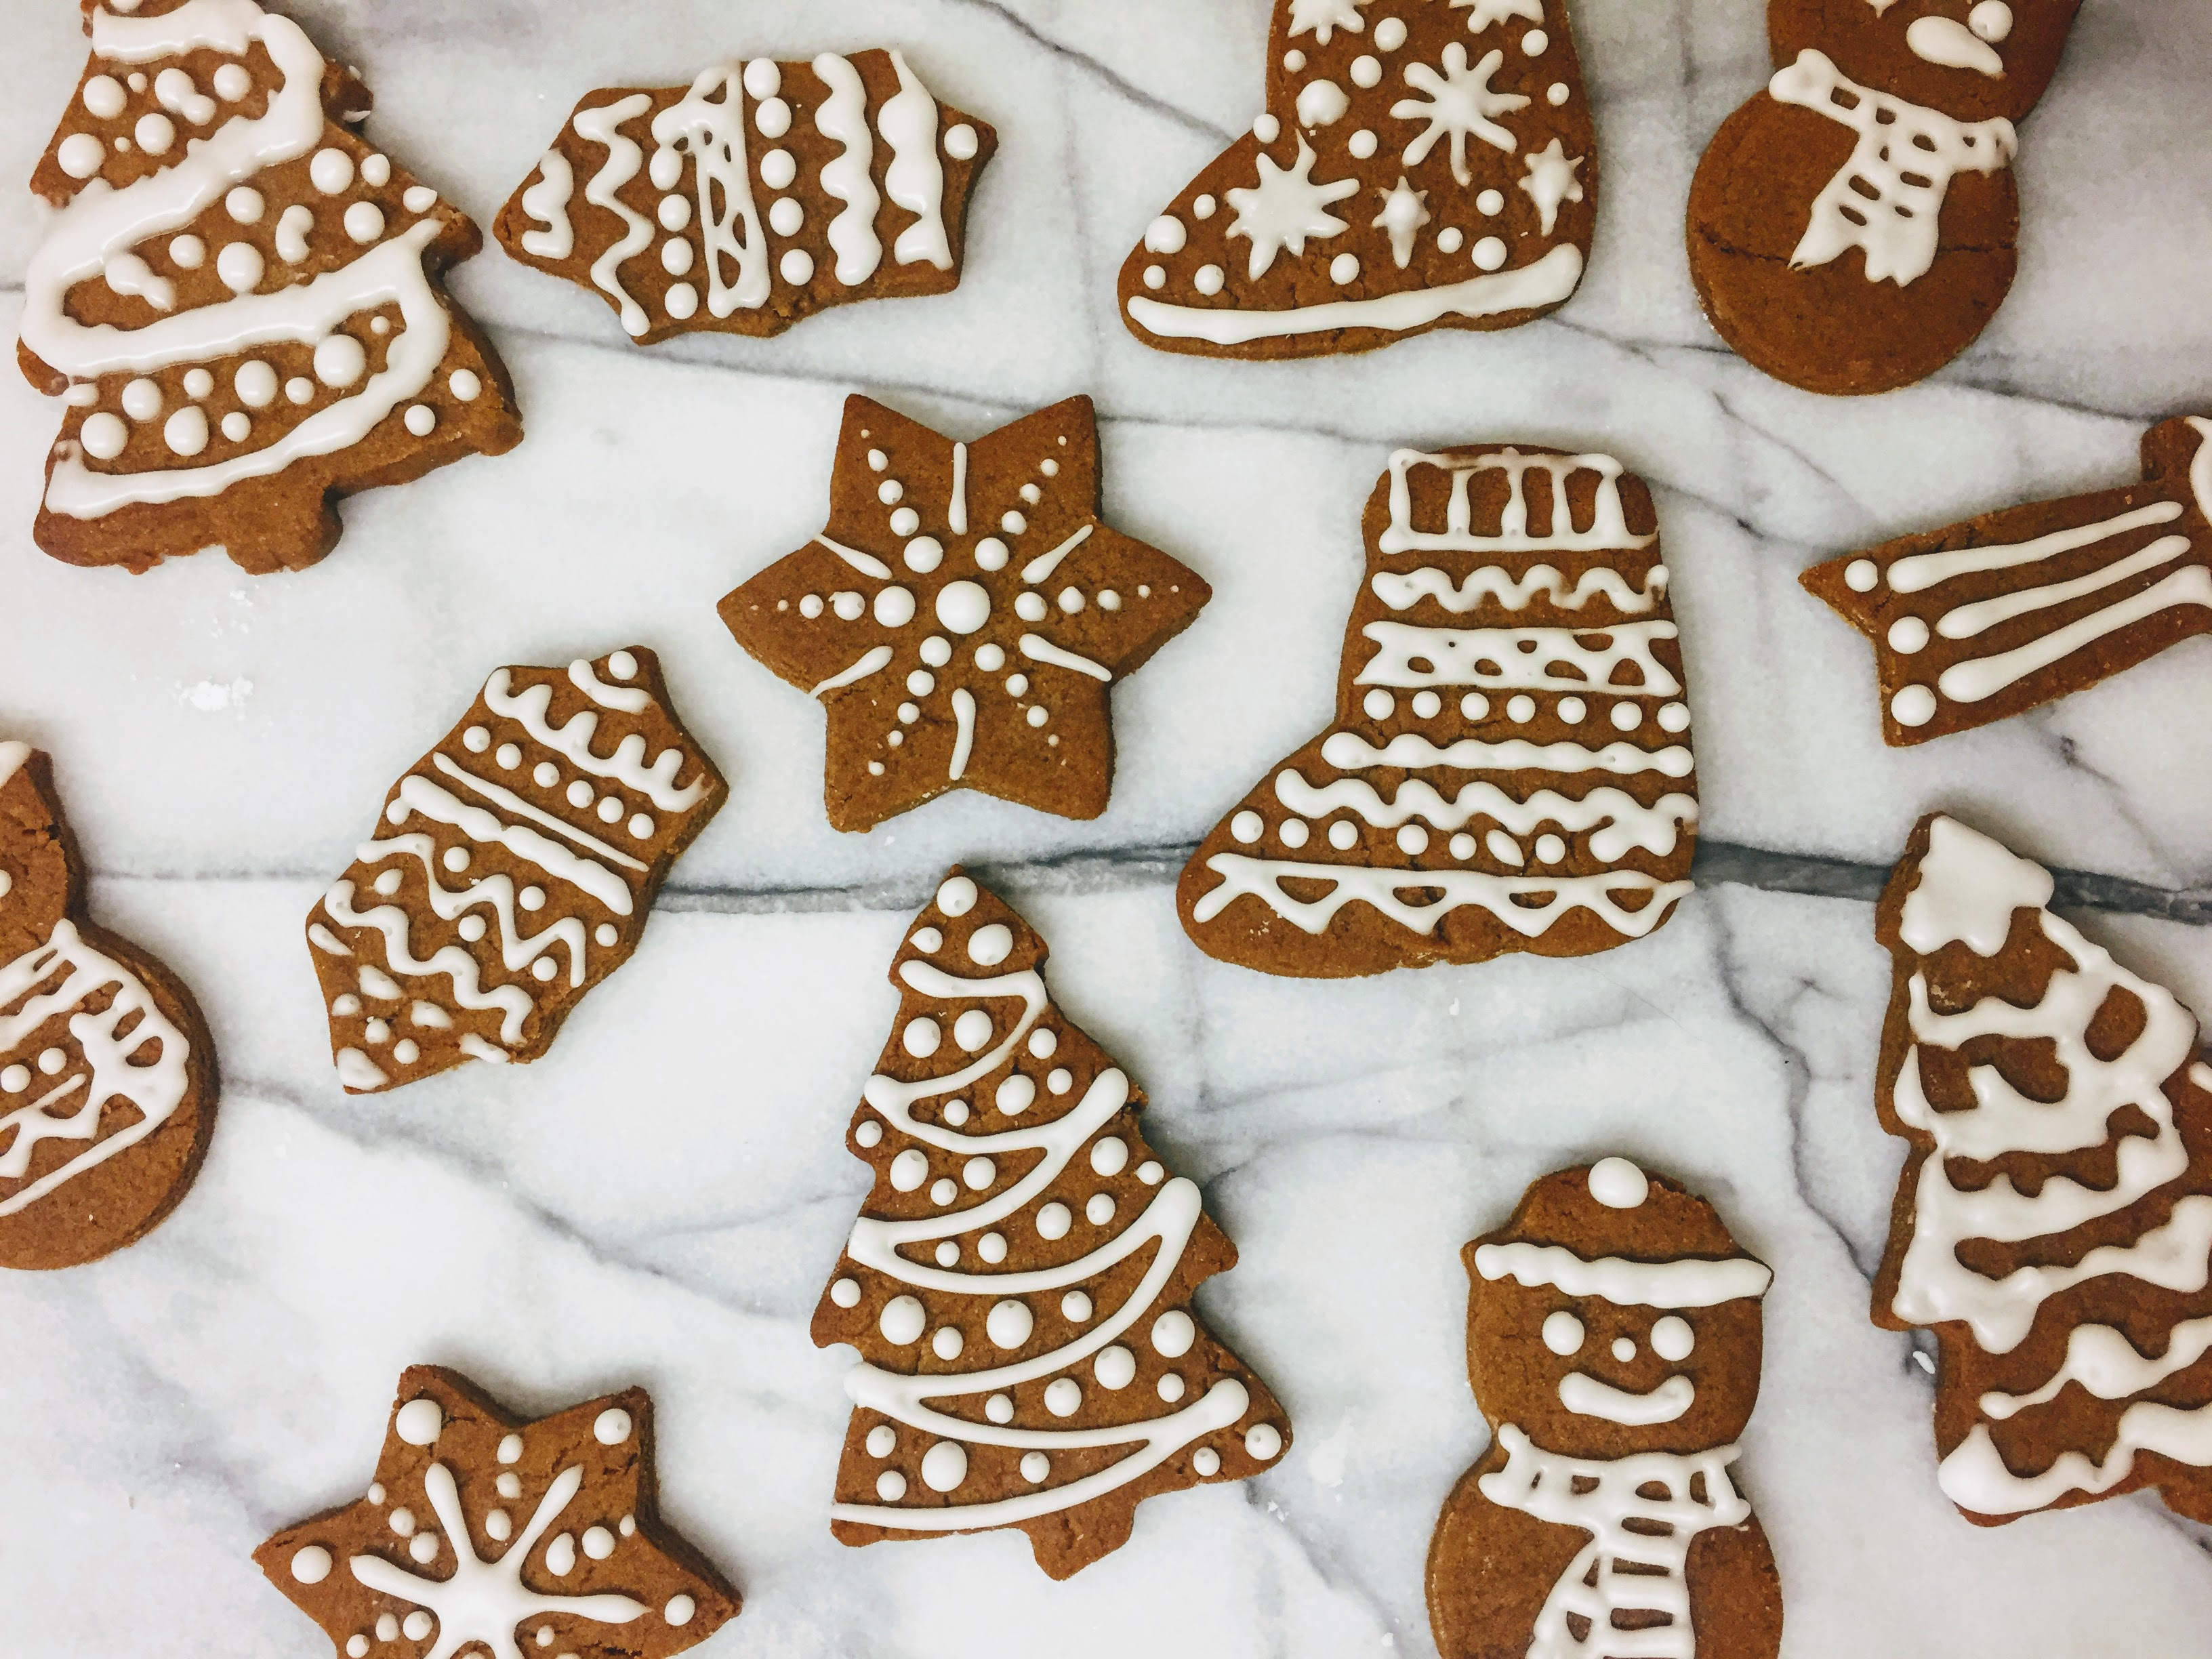 An aerial view of the gingerbread biscuits laid out on a marble board, shaped like stars, christmas trees, stockings, snowmen and holly. The biscuits are dark golden brown and are decorated with piped bright white icing.